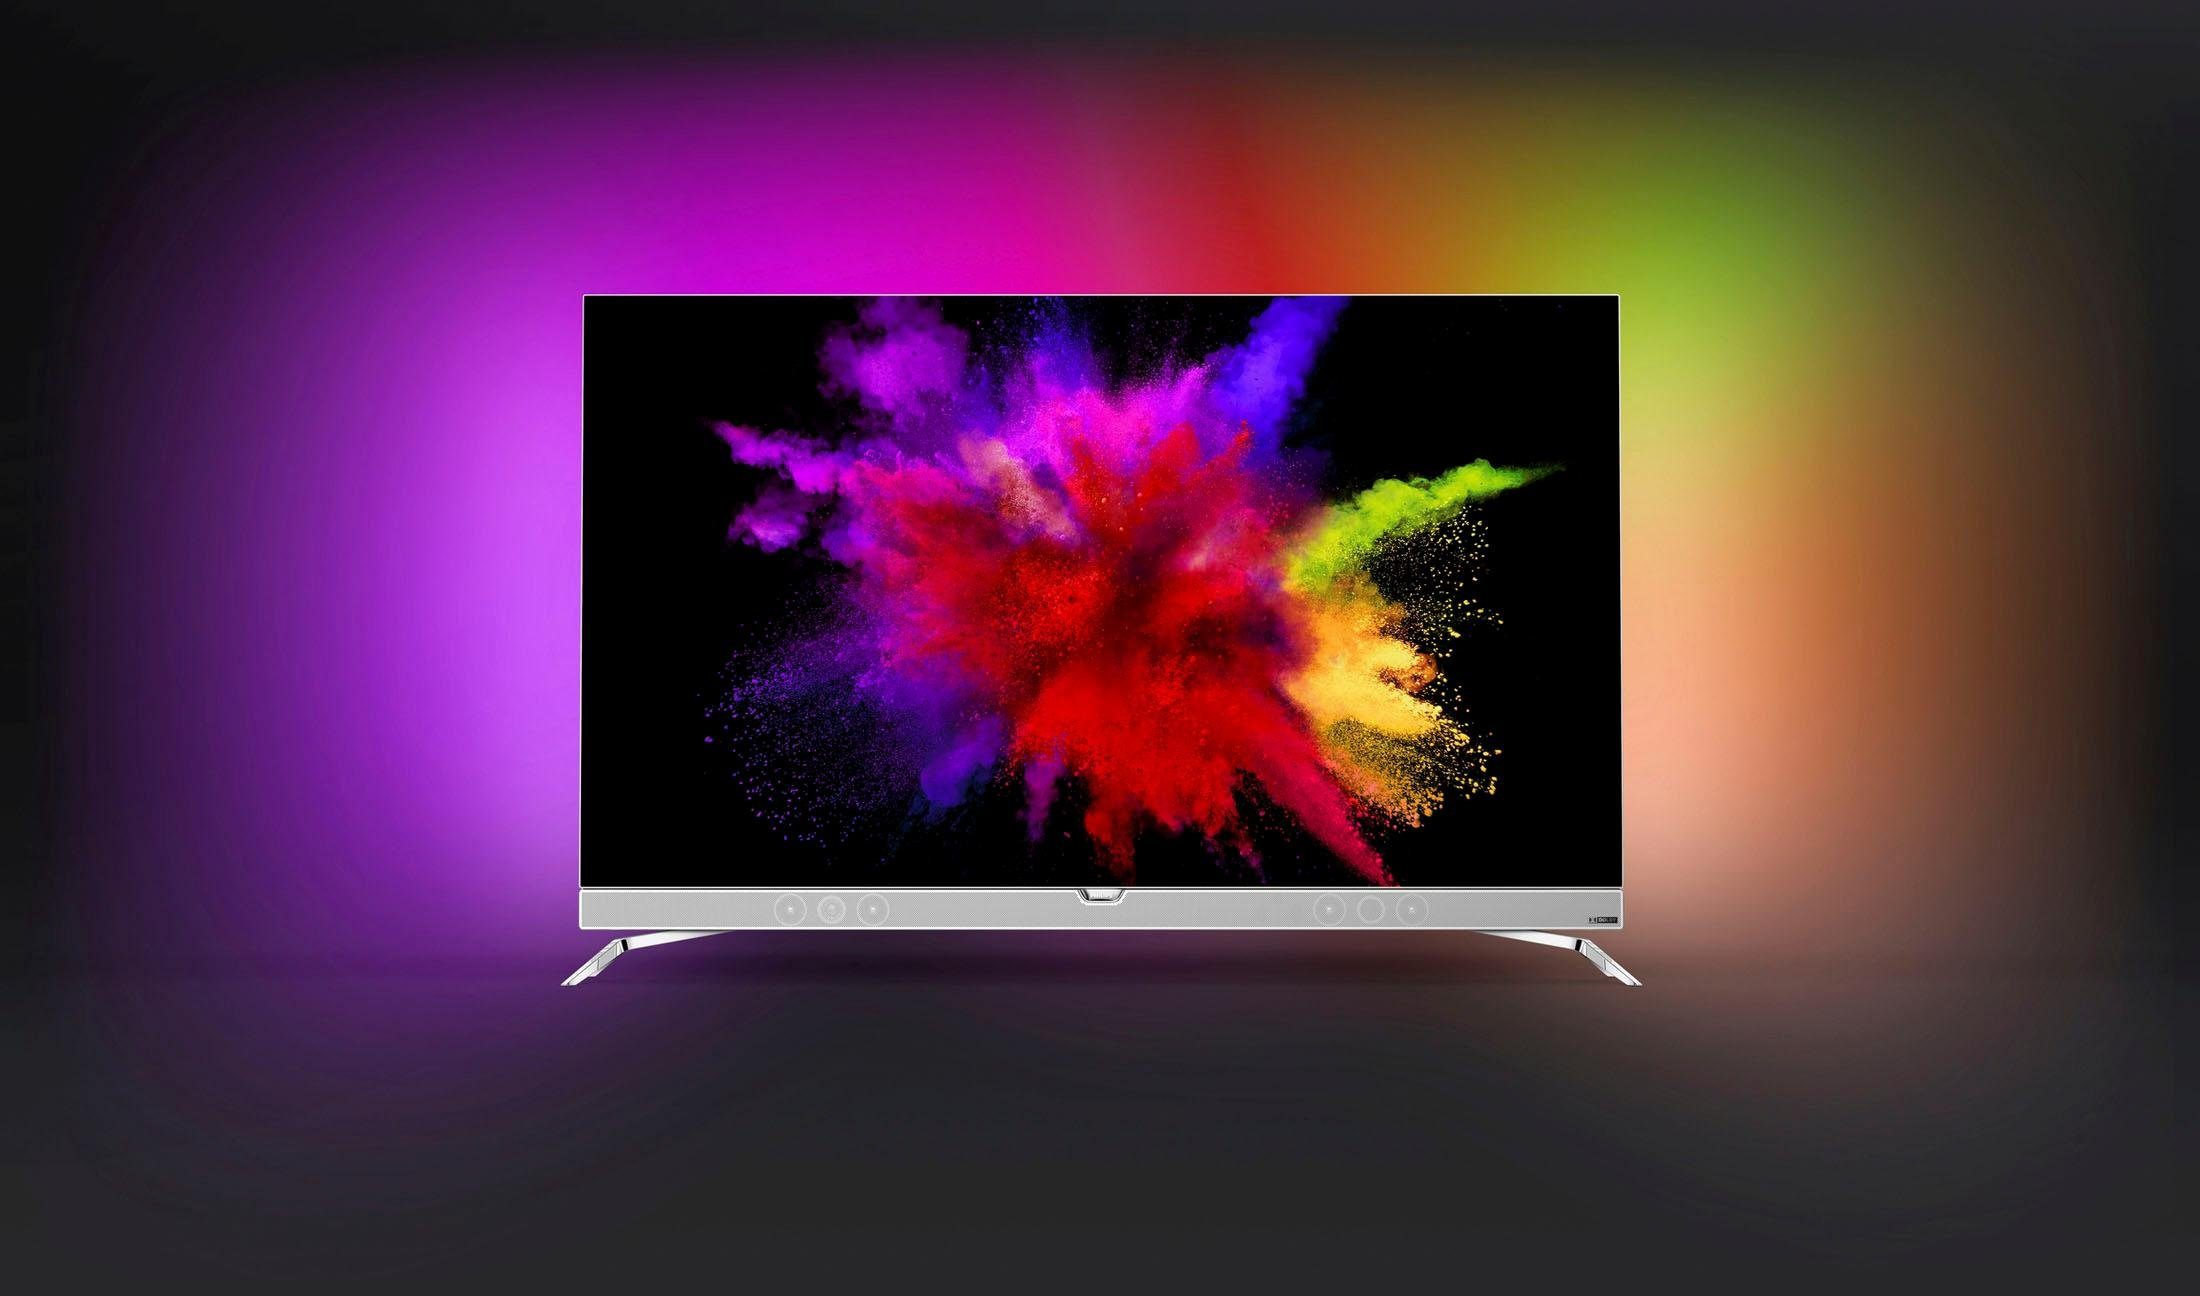 Philips 55POS901F/12, OLED Fernseher, 139 cm (55 Zoll), 2160p (4K Ultra HD) Ambilight, Smart-TV